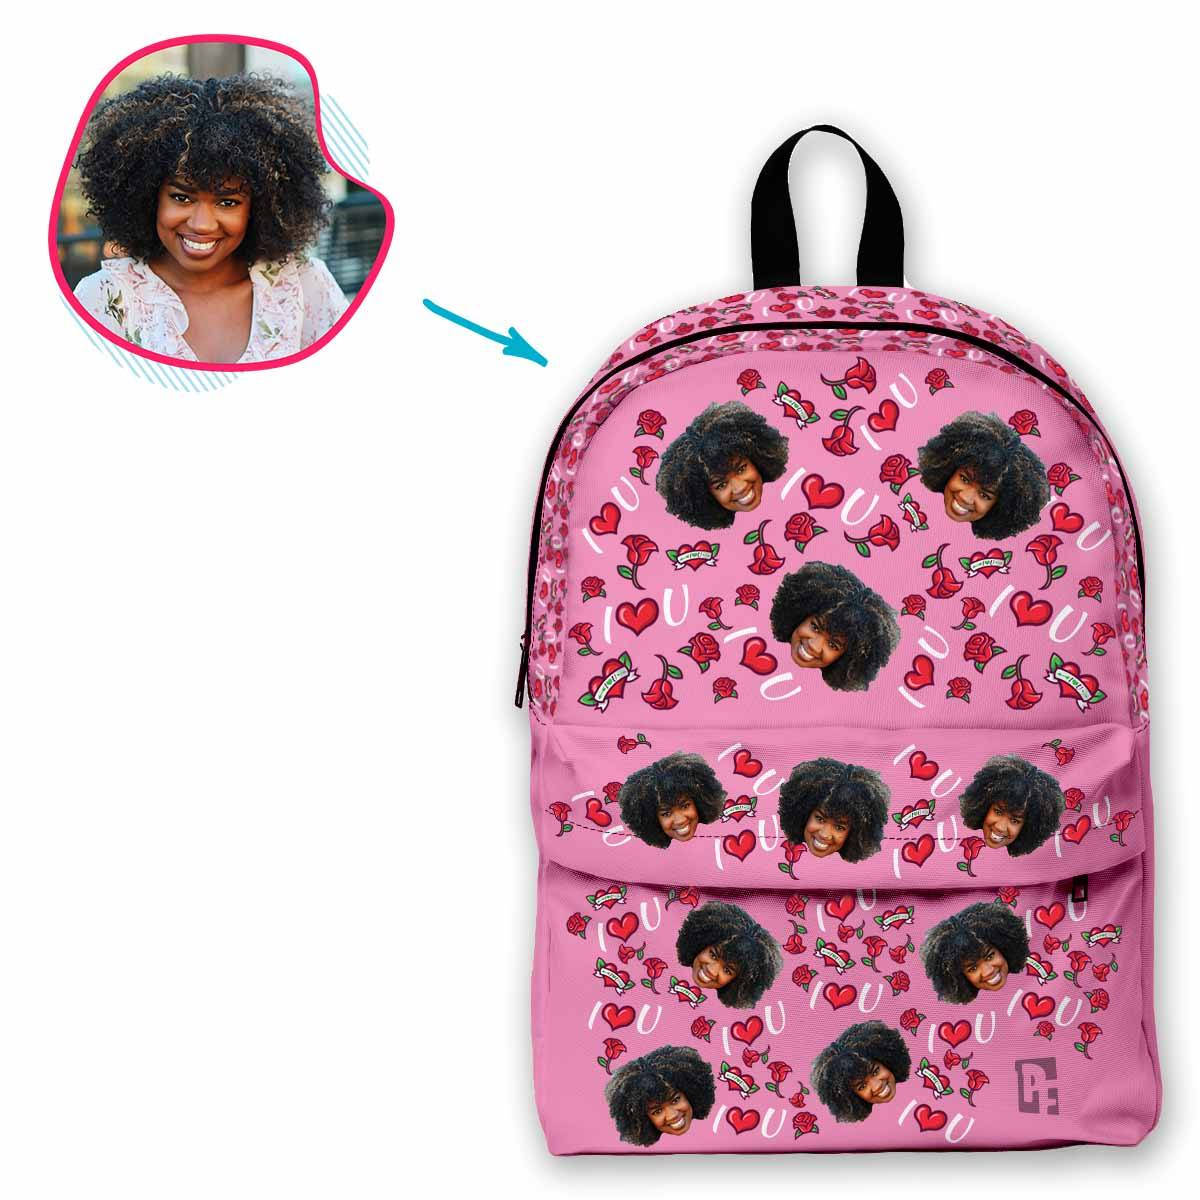 pink Valentines classic backpack personalized with photo of face printed on it